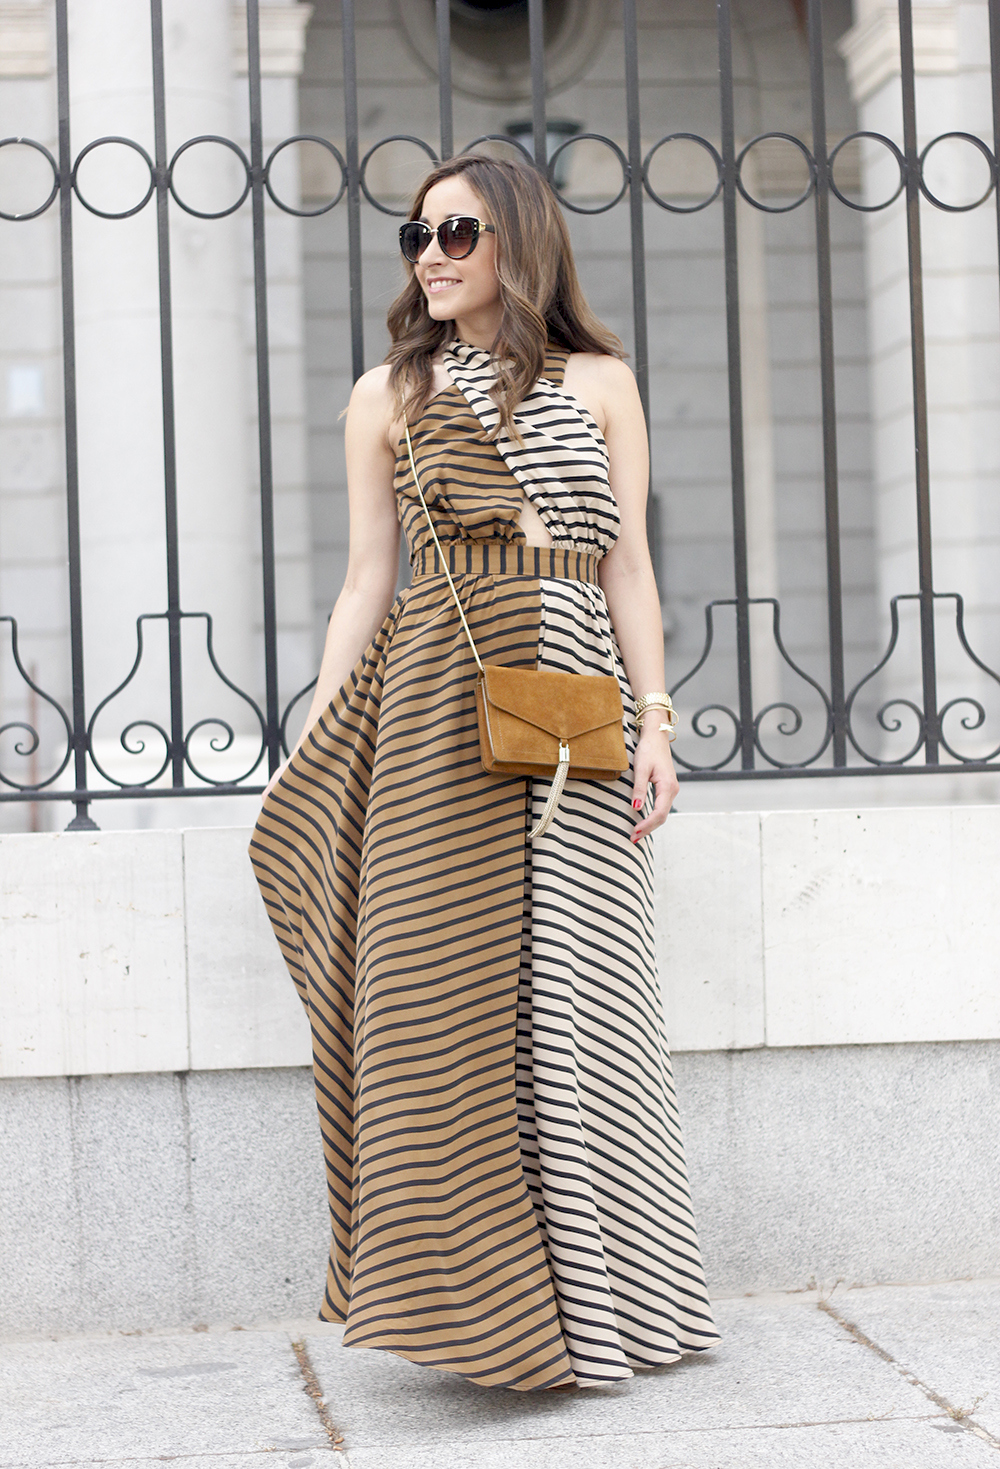 Maxi Striped Dress summer outfit sunnies uterqüe black sandals style fashion09